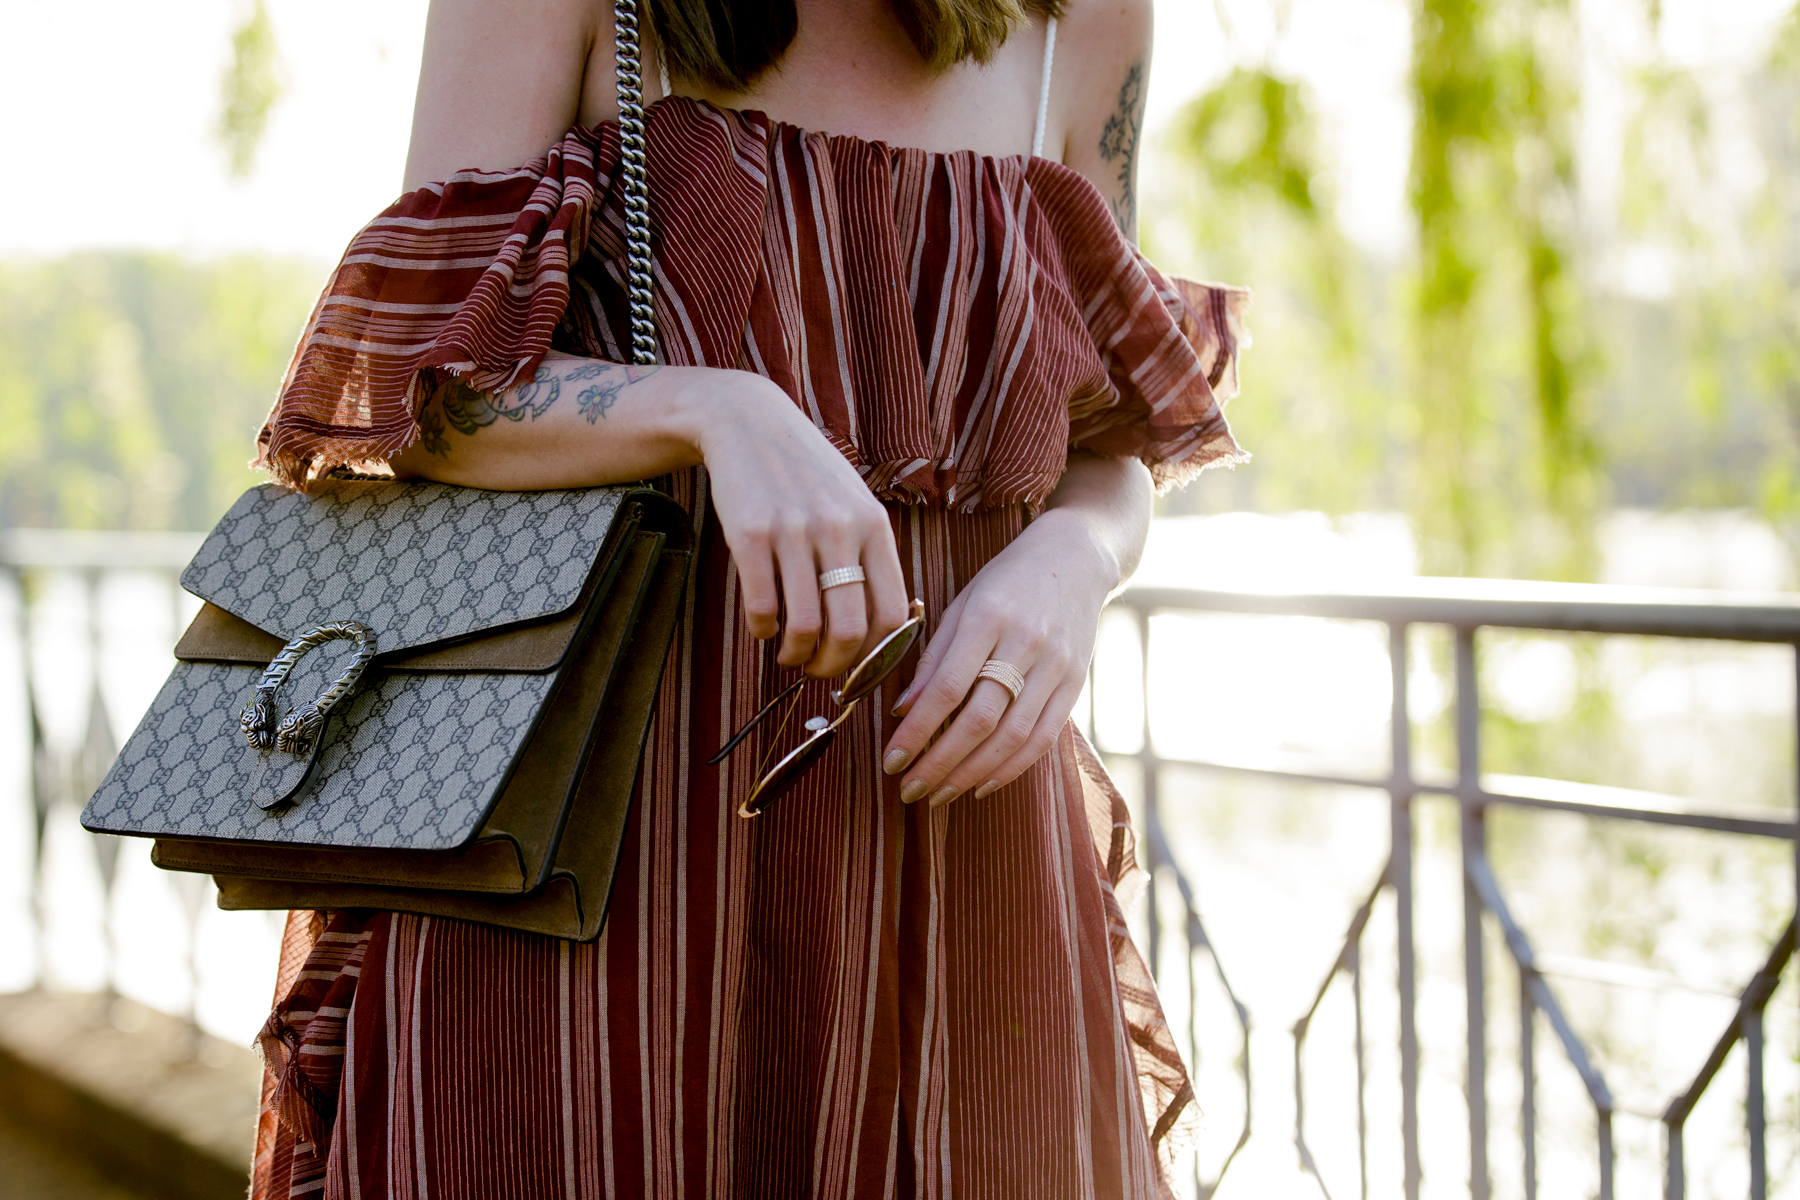 free people off shoulder hippie dress shopbop summer style zara gold flower heels round sunglasses boho vintage chic gucci dionysus fashionblogger cats & dogs modeblog ricarda schernus blogger düsseldorf 5